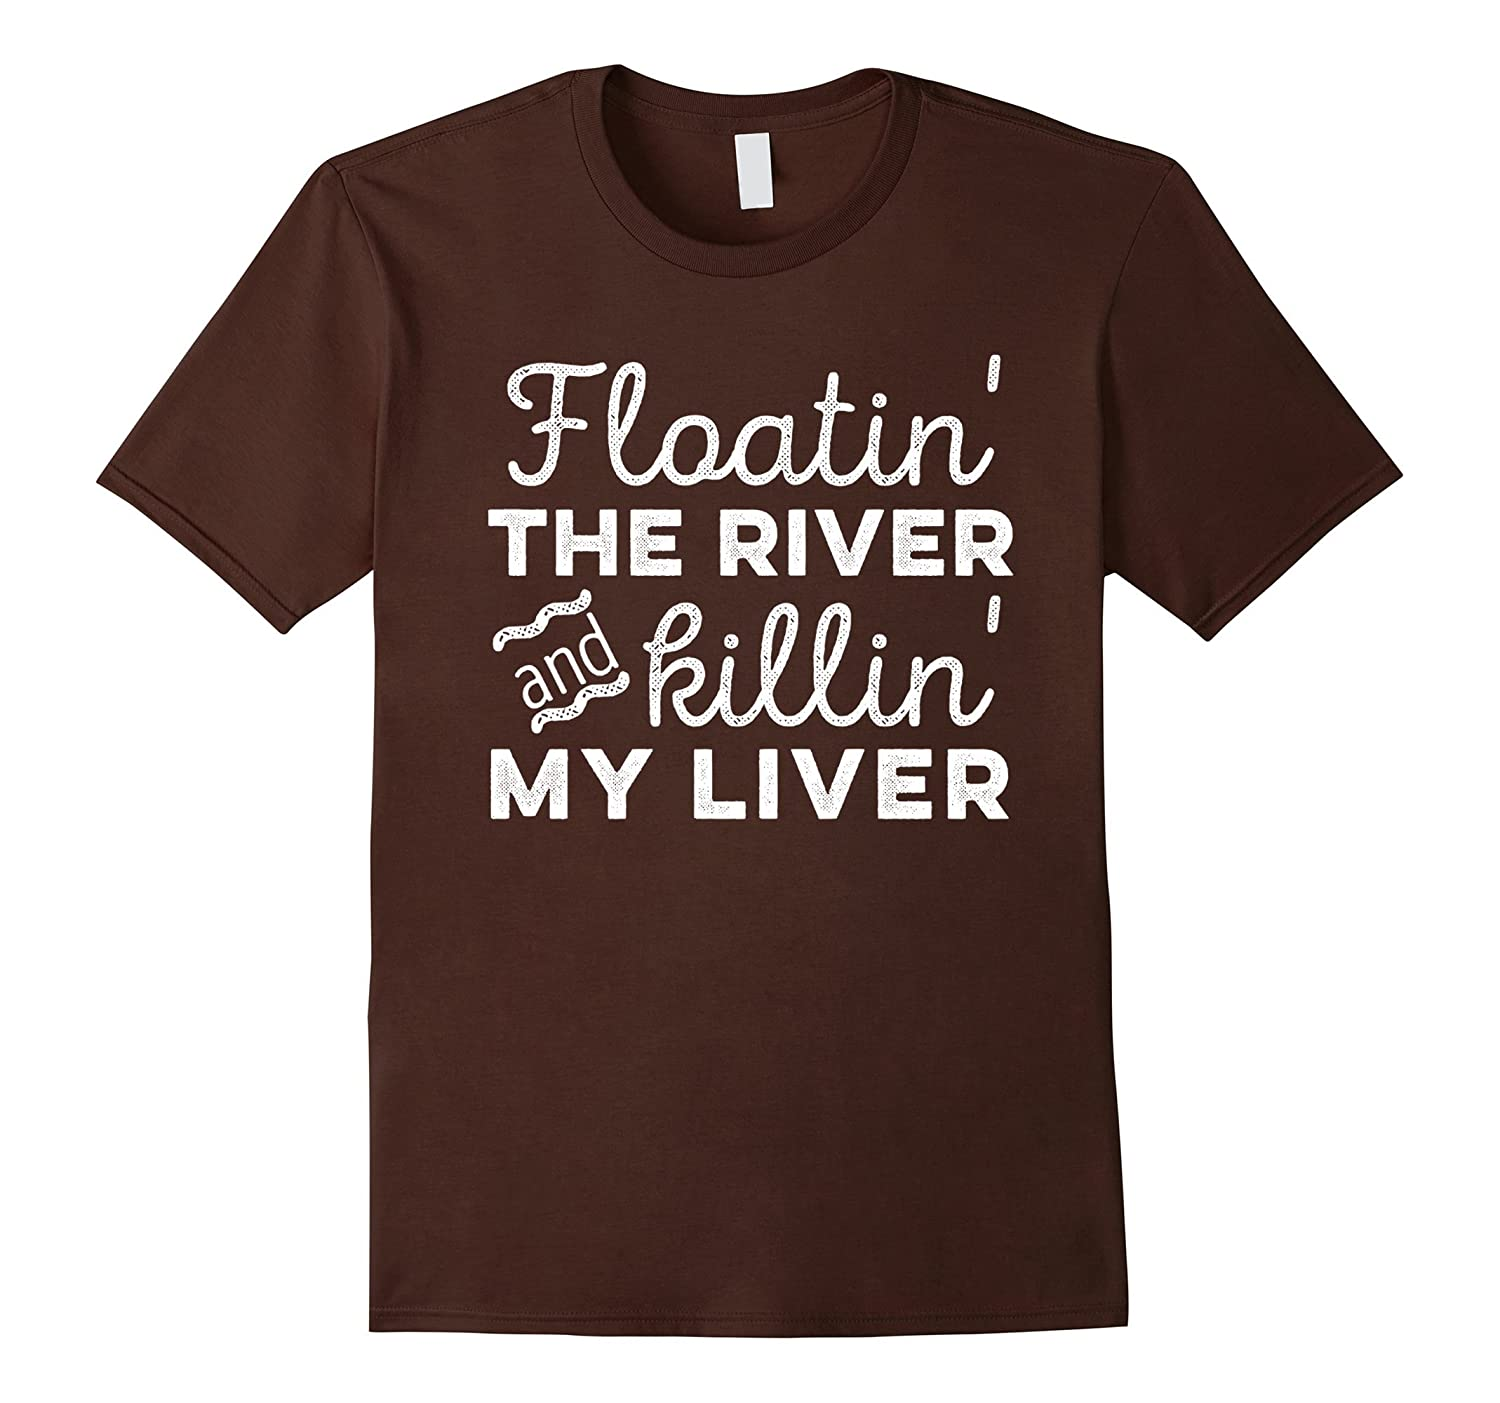 Floatin The River And Killin My Liver T-Shirt